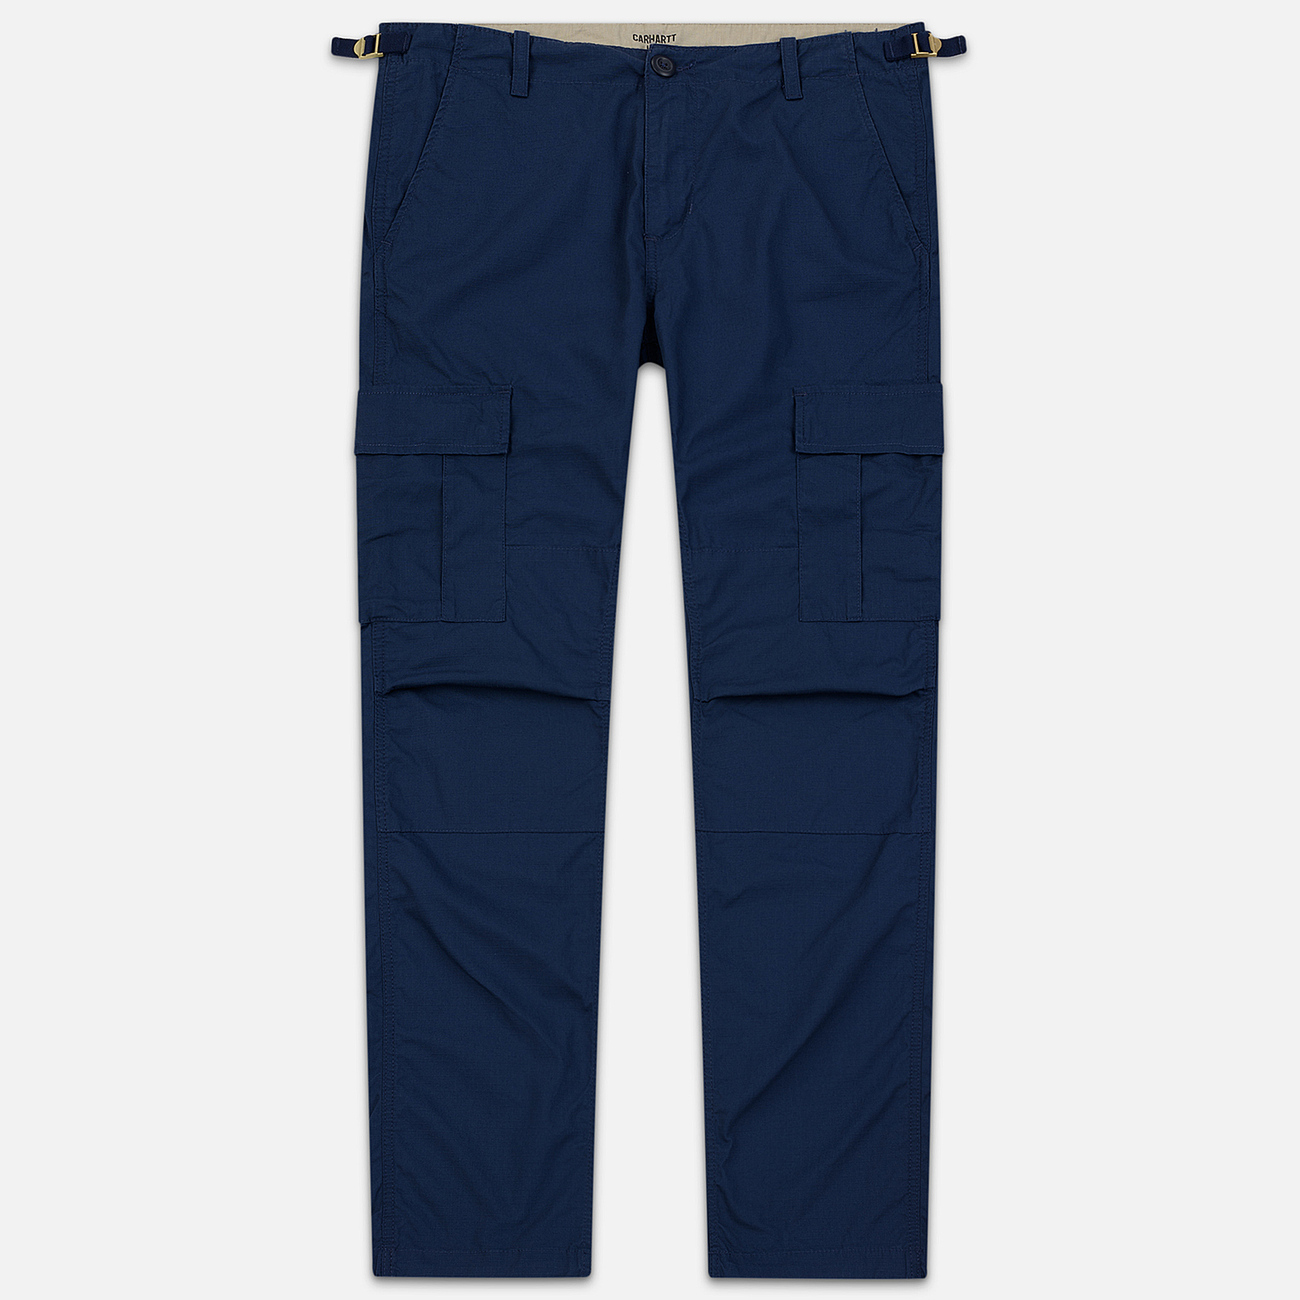 Мужские брюки Carhartt WIP Aviation Columbia Ripstop 6.5 Oz Blue Rinsed